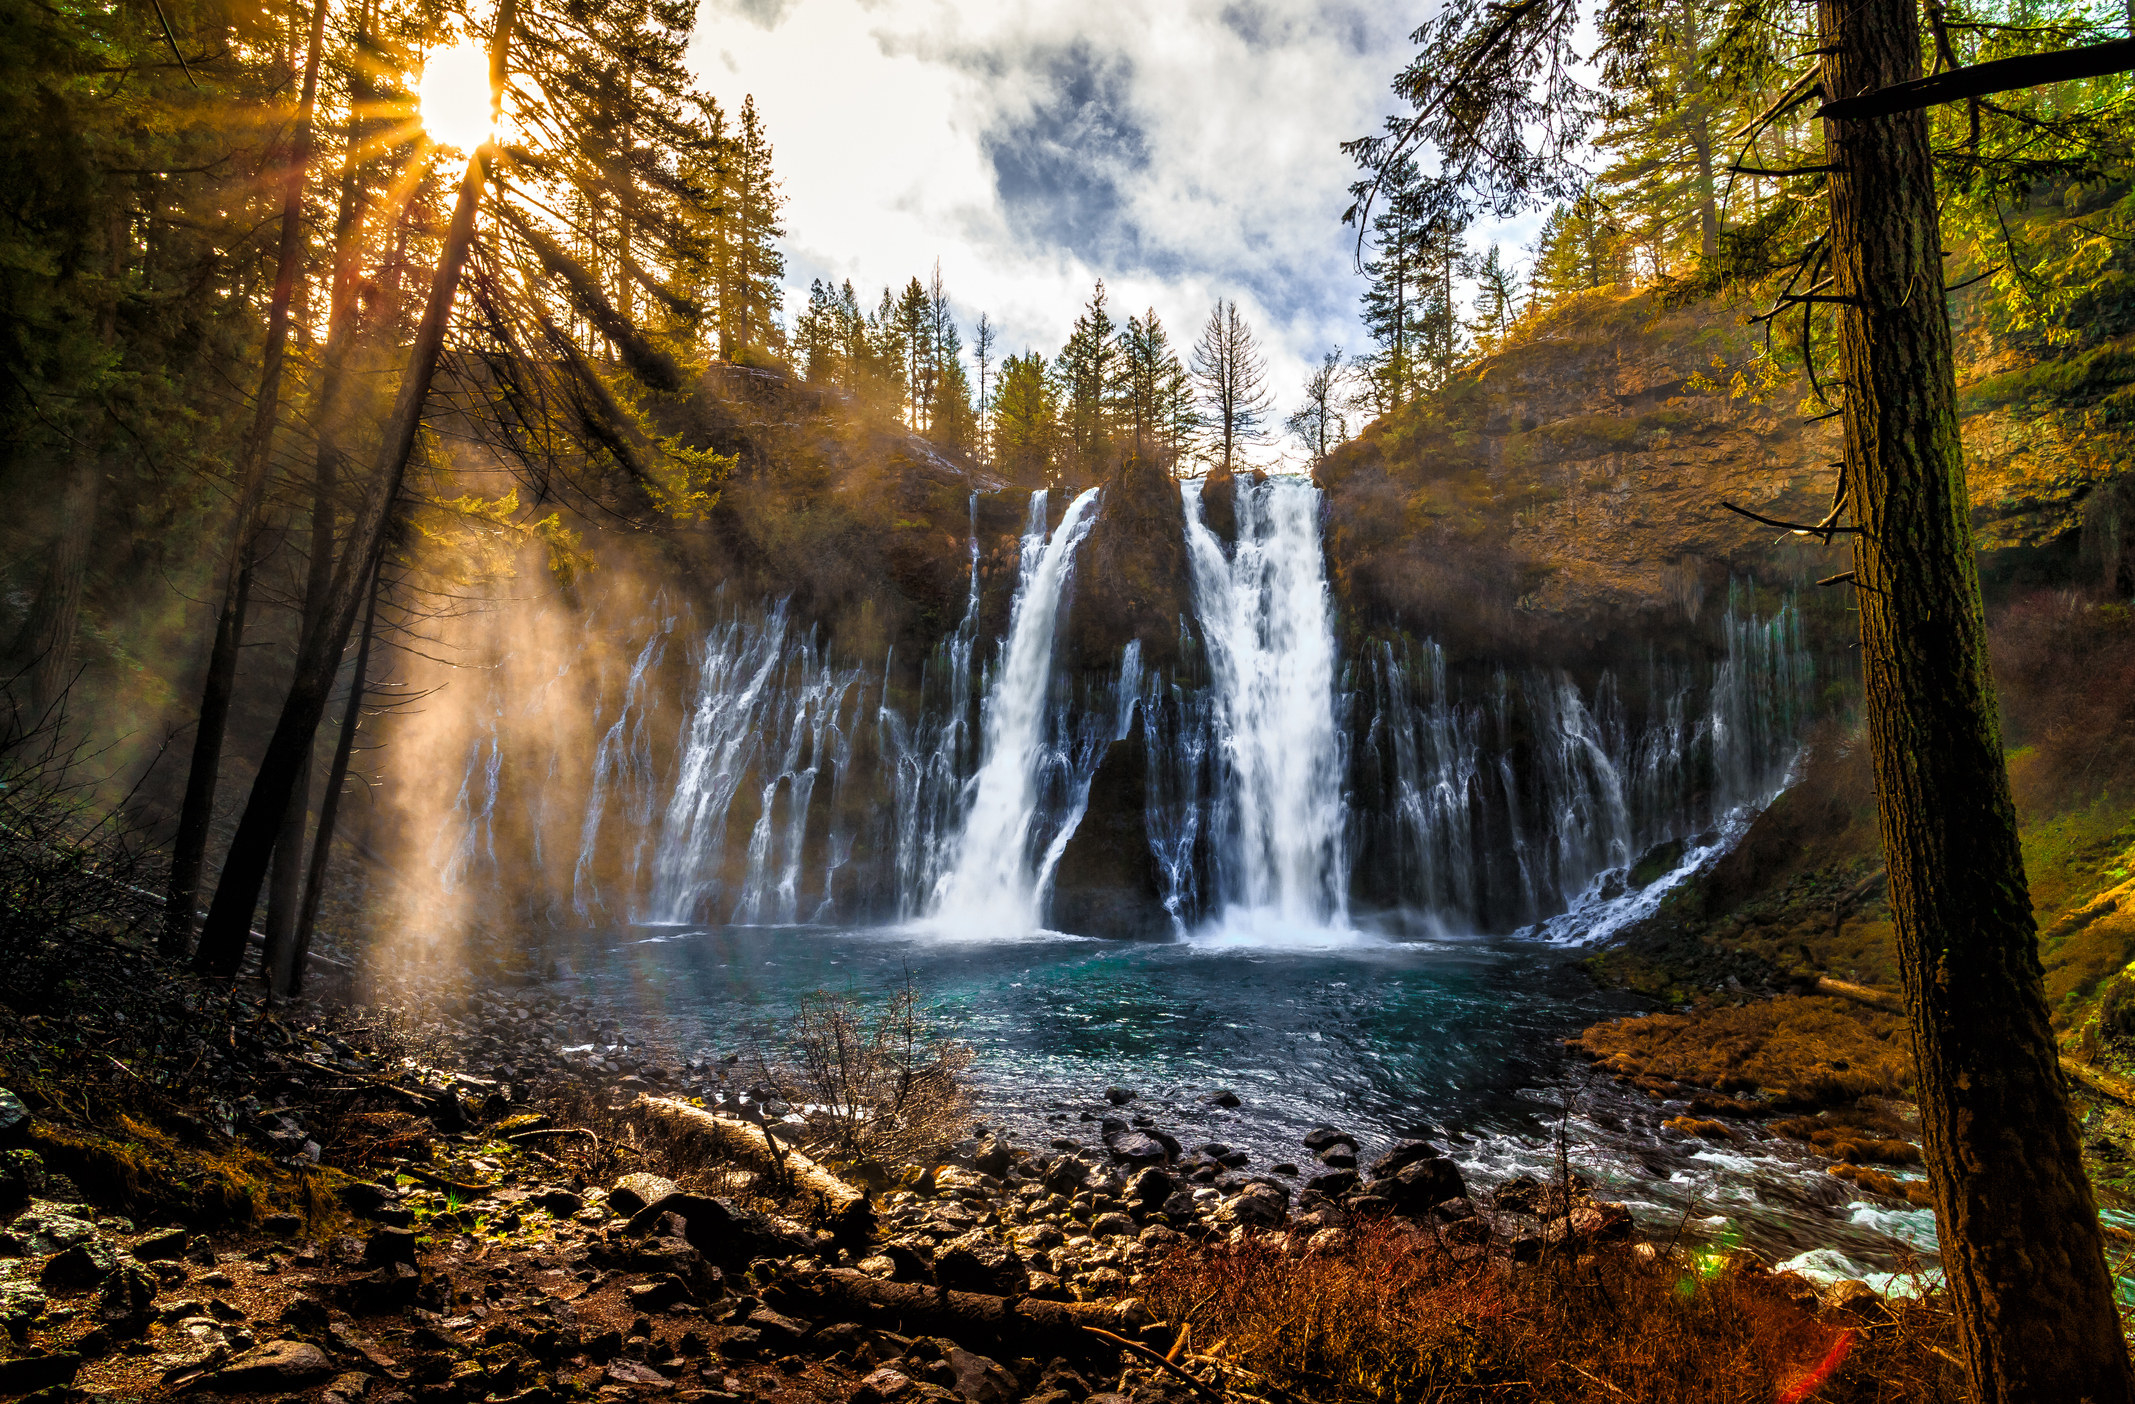 A cascading waterfall with the sun and trees nearby.